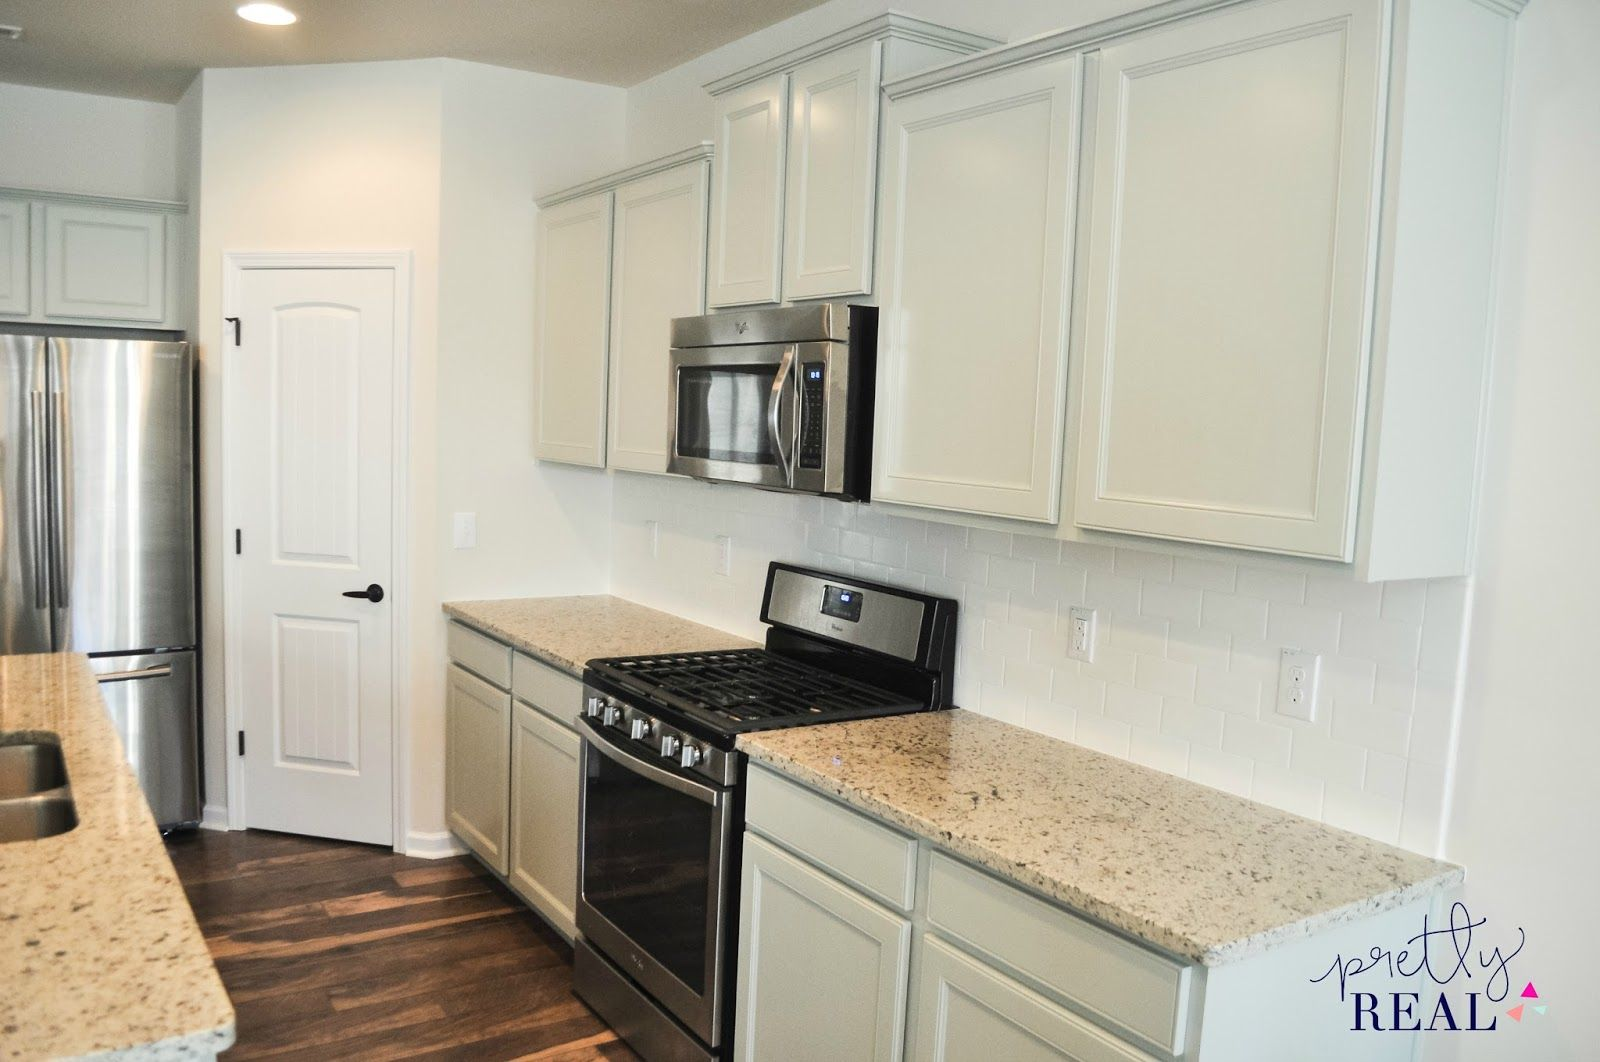 We painted our brand new kitchen cabinets and hereus how it turned